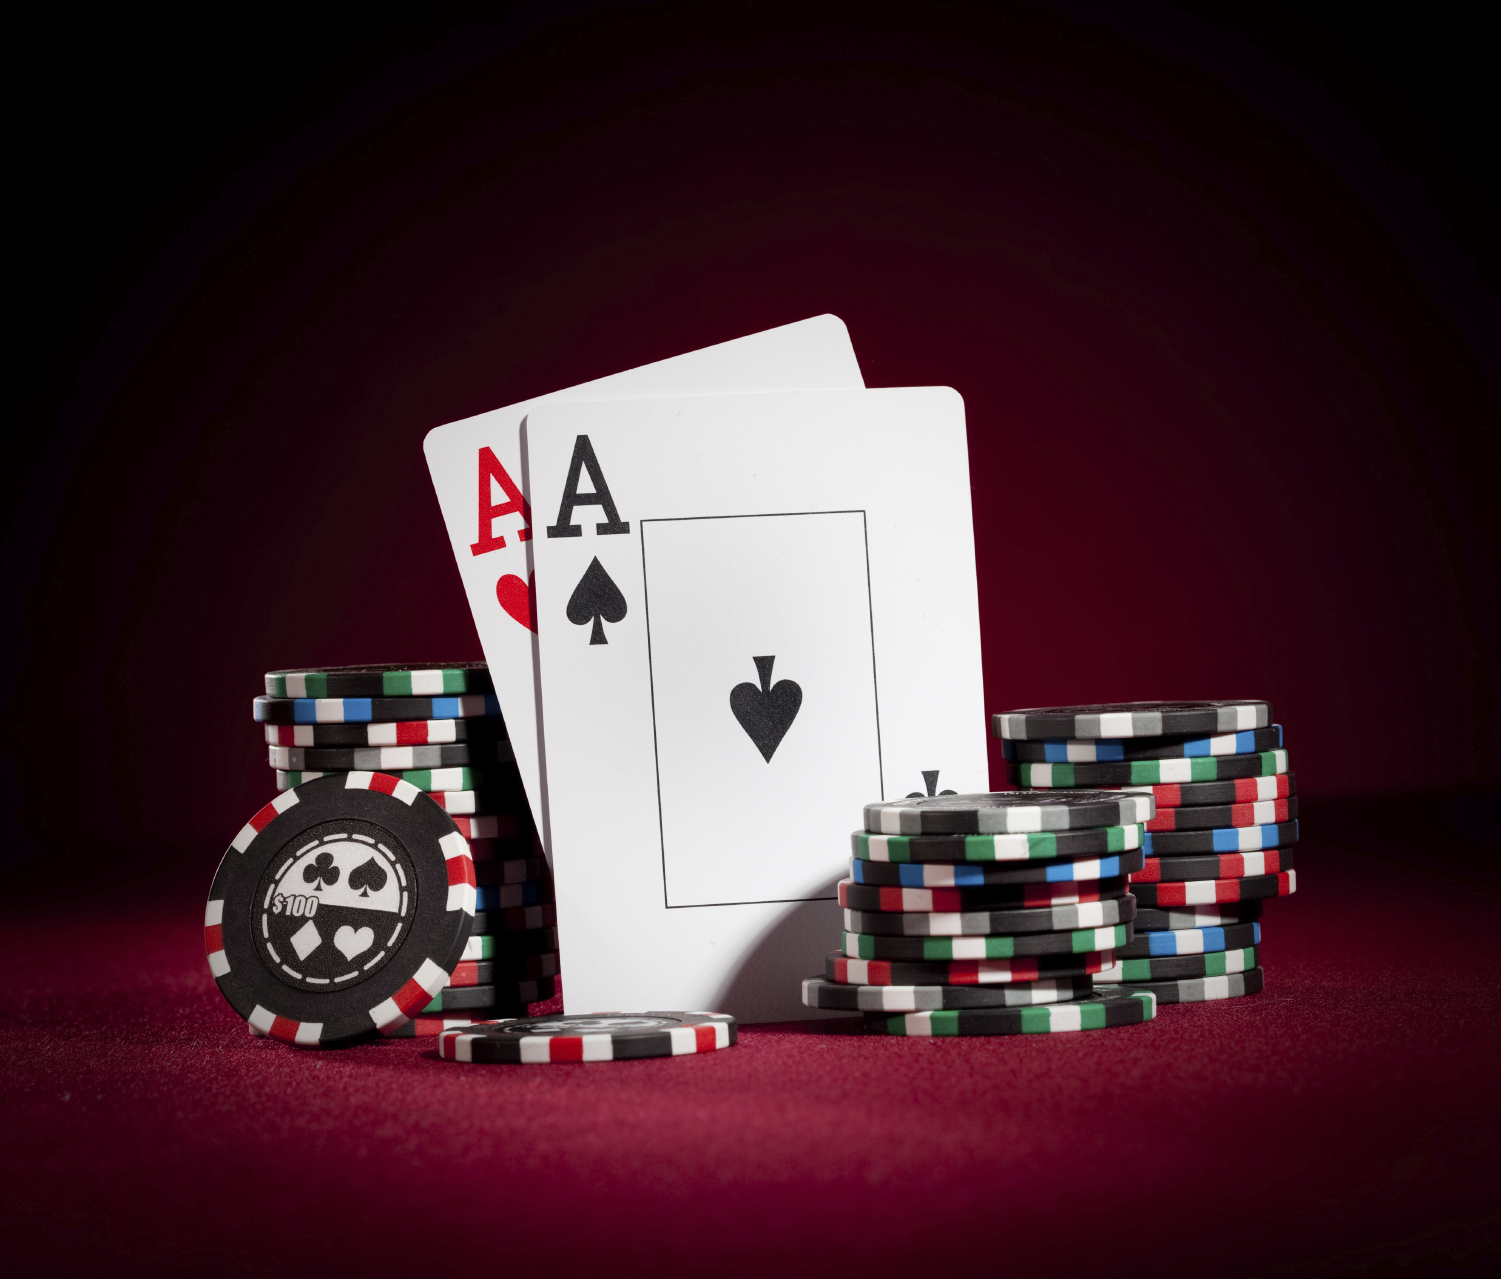 Tunaspoker Online: The Best in Card-Based Online Game Betting